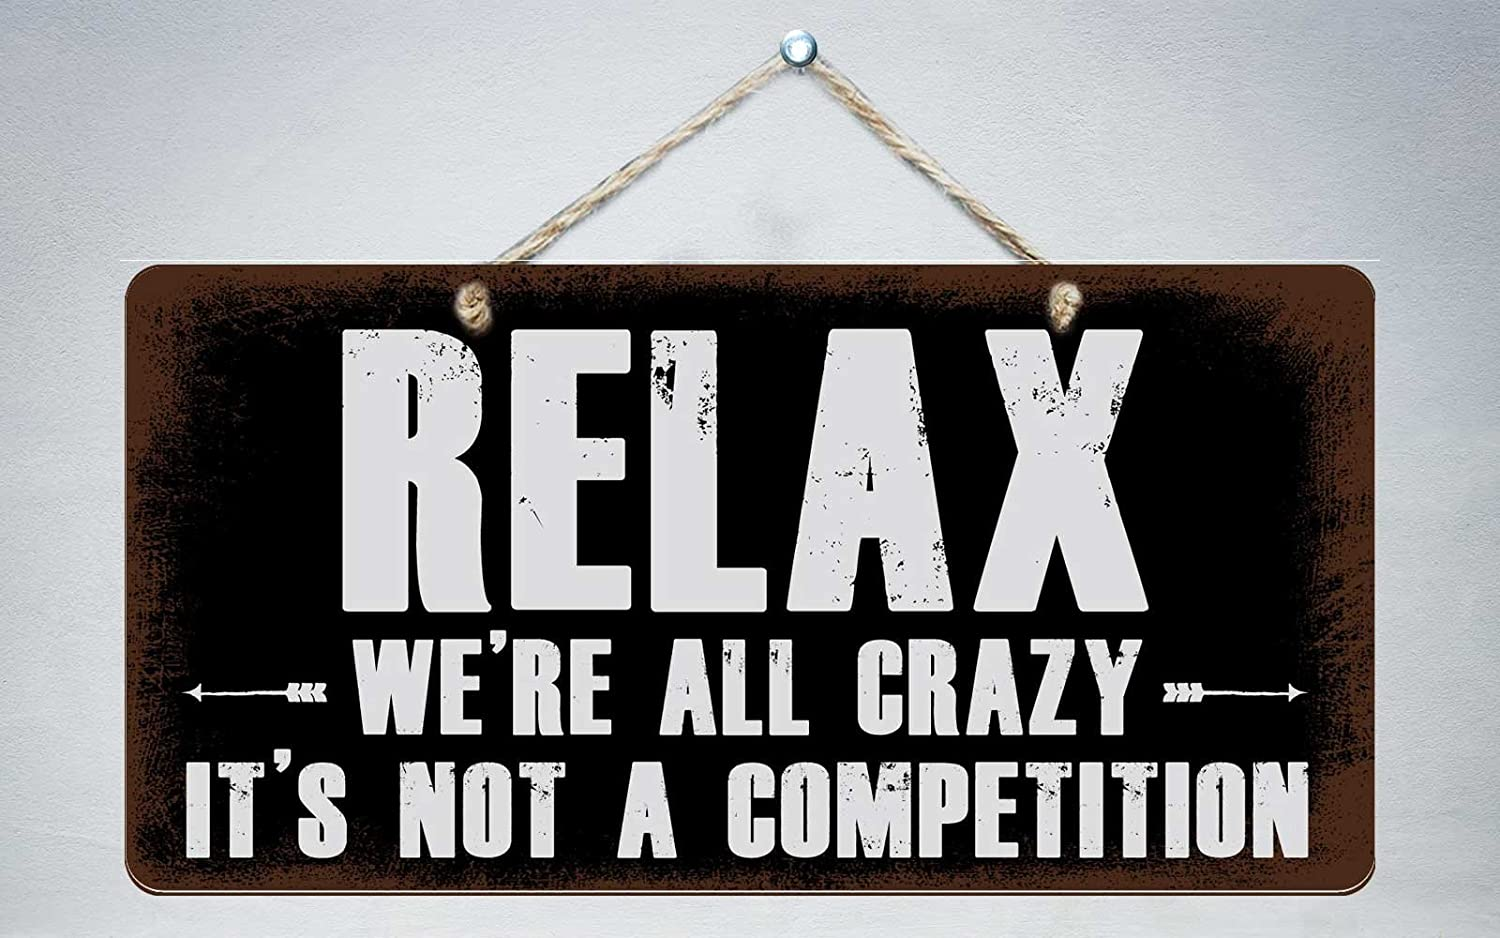 597HS Relax We Re All Crazy Its Not A Competition 5x10 Aluminum Hanging Novelty Sign